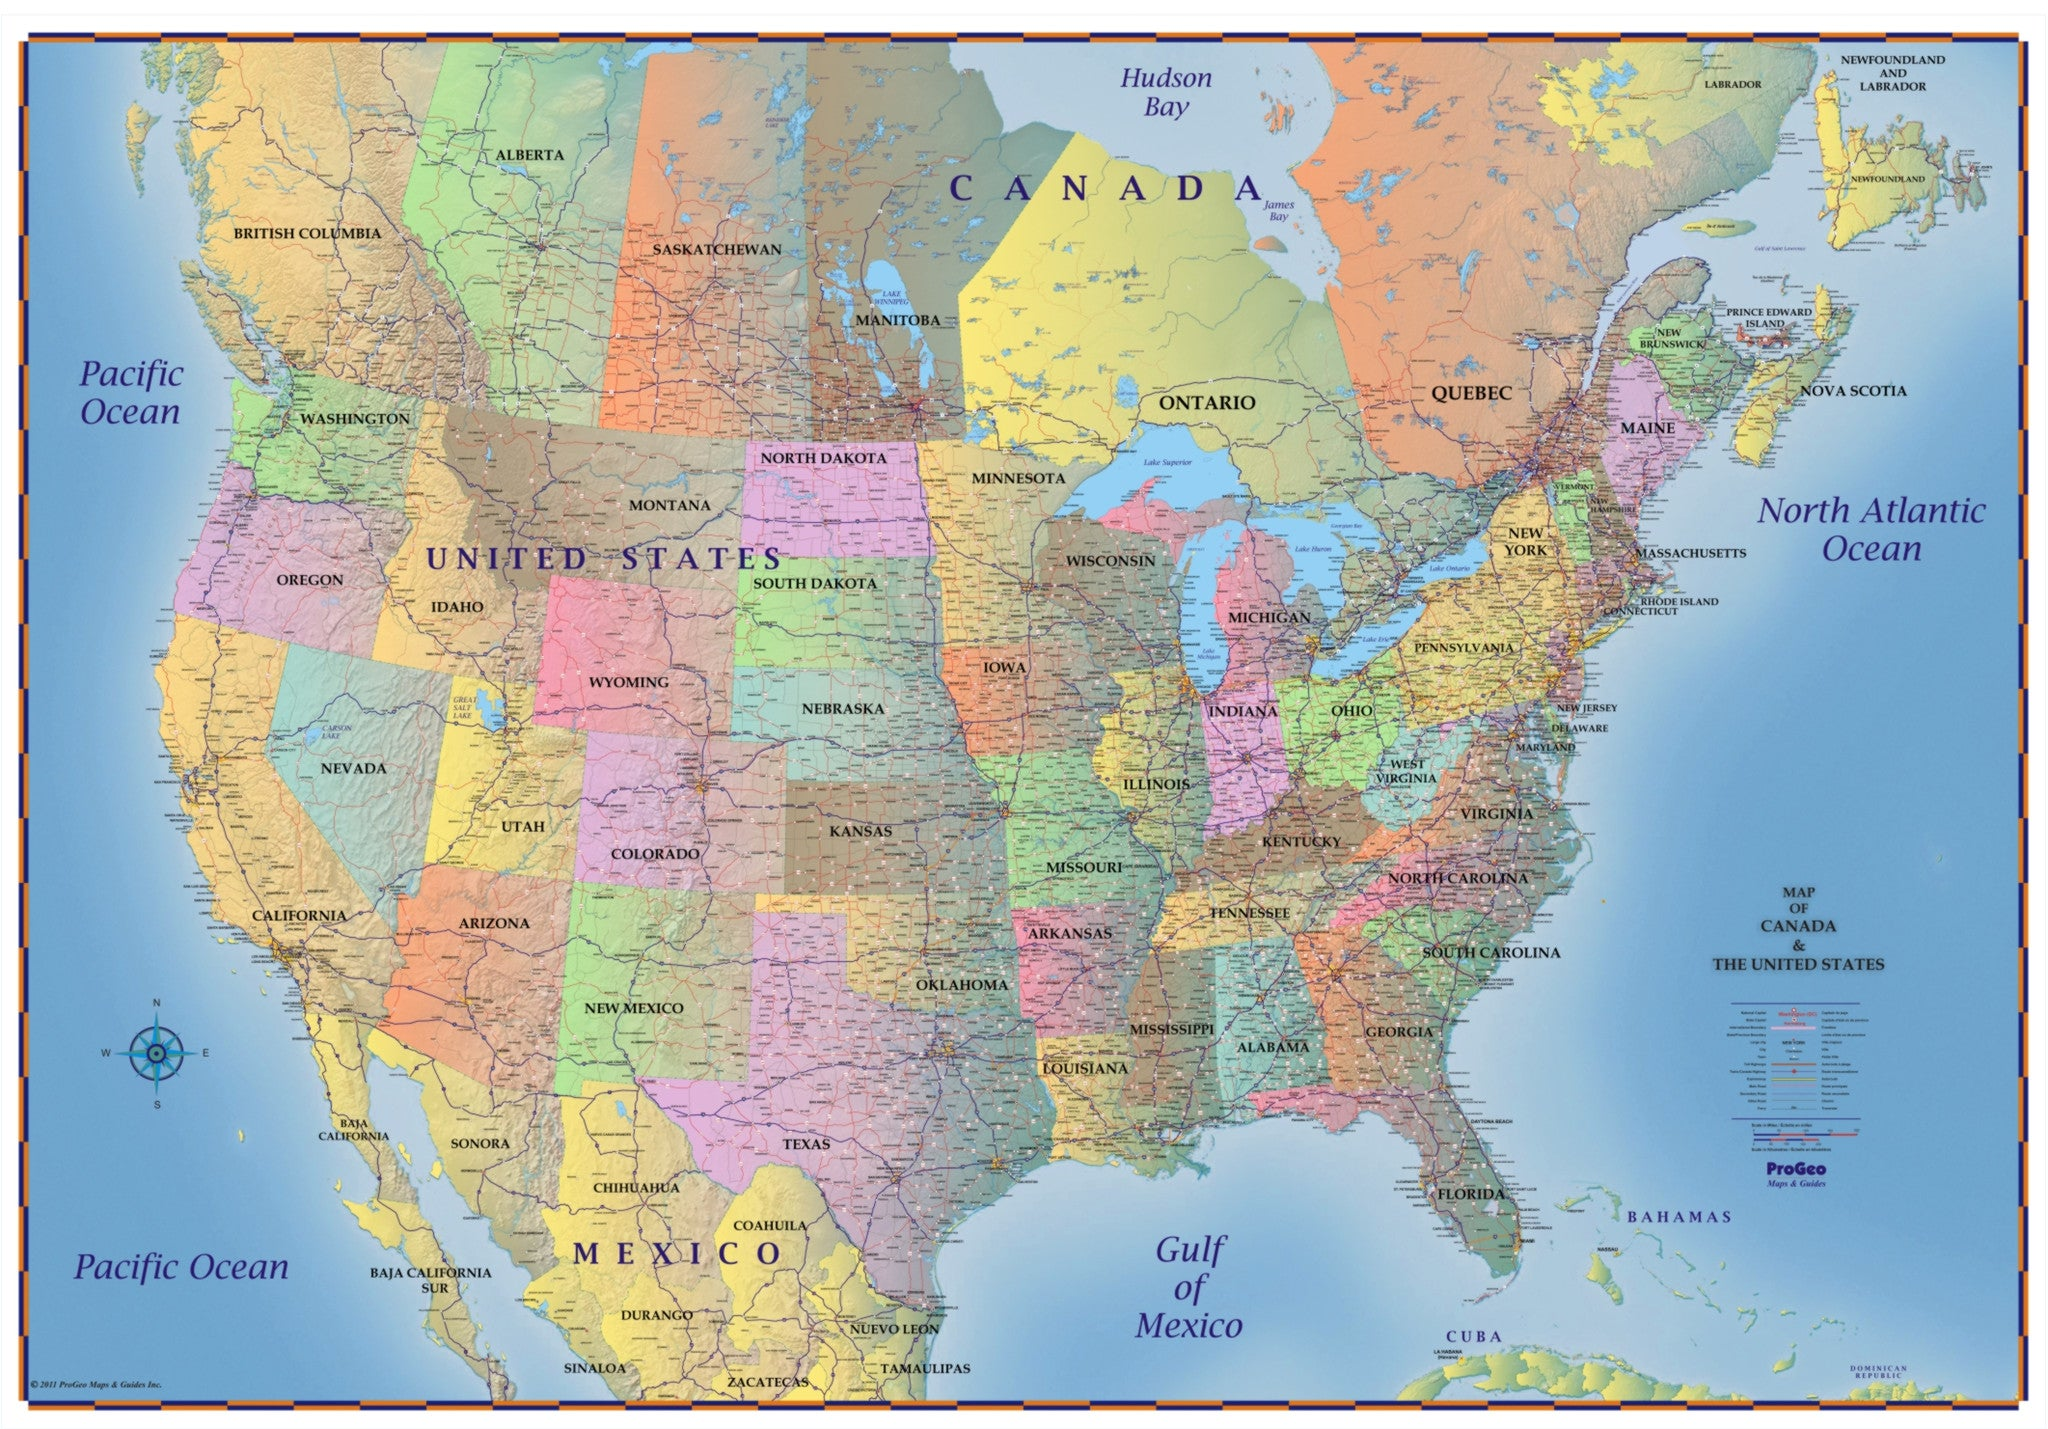 Trucker S Wall Map Of Canada United States And Northern Mexico 2021 E Progeo Maps Guides